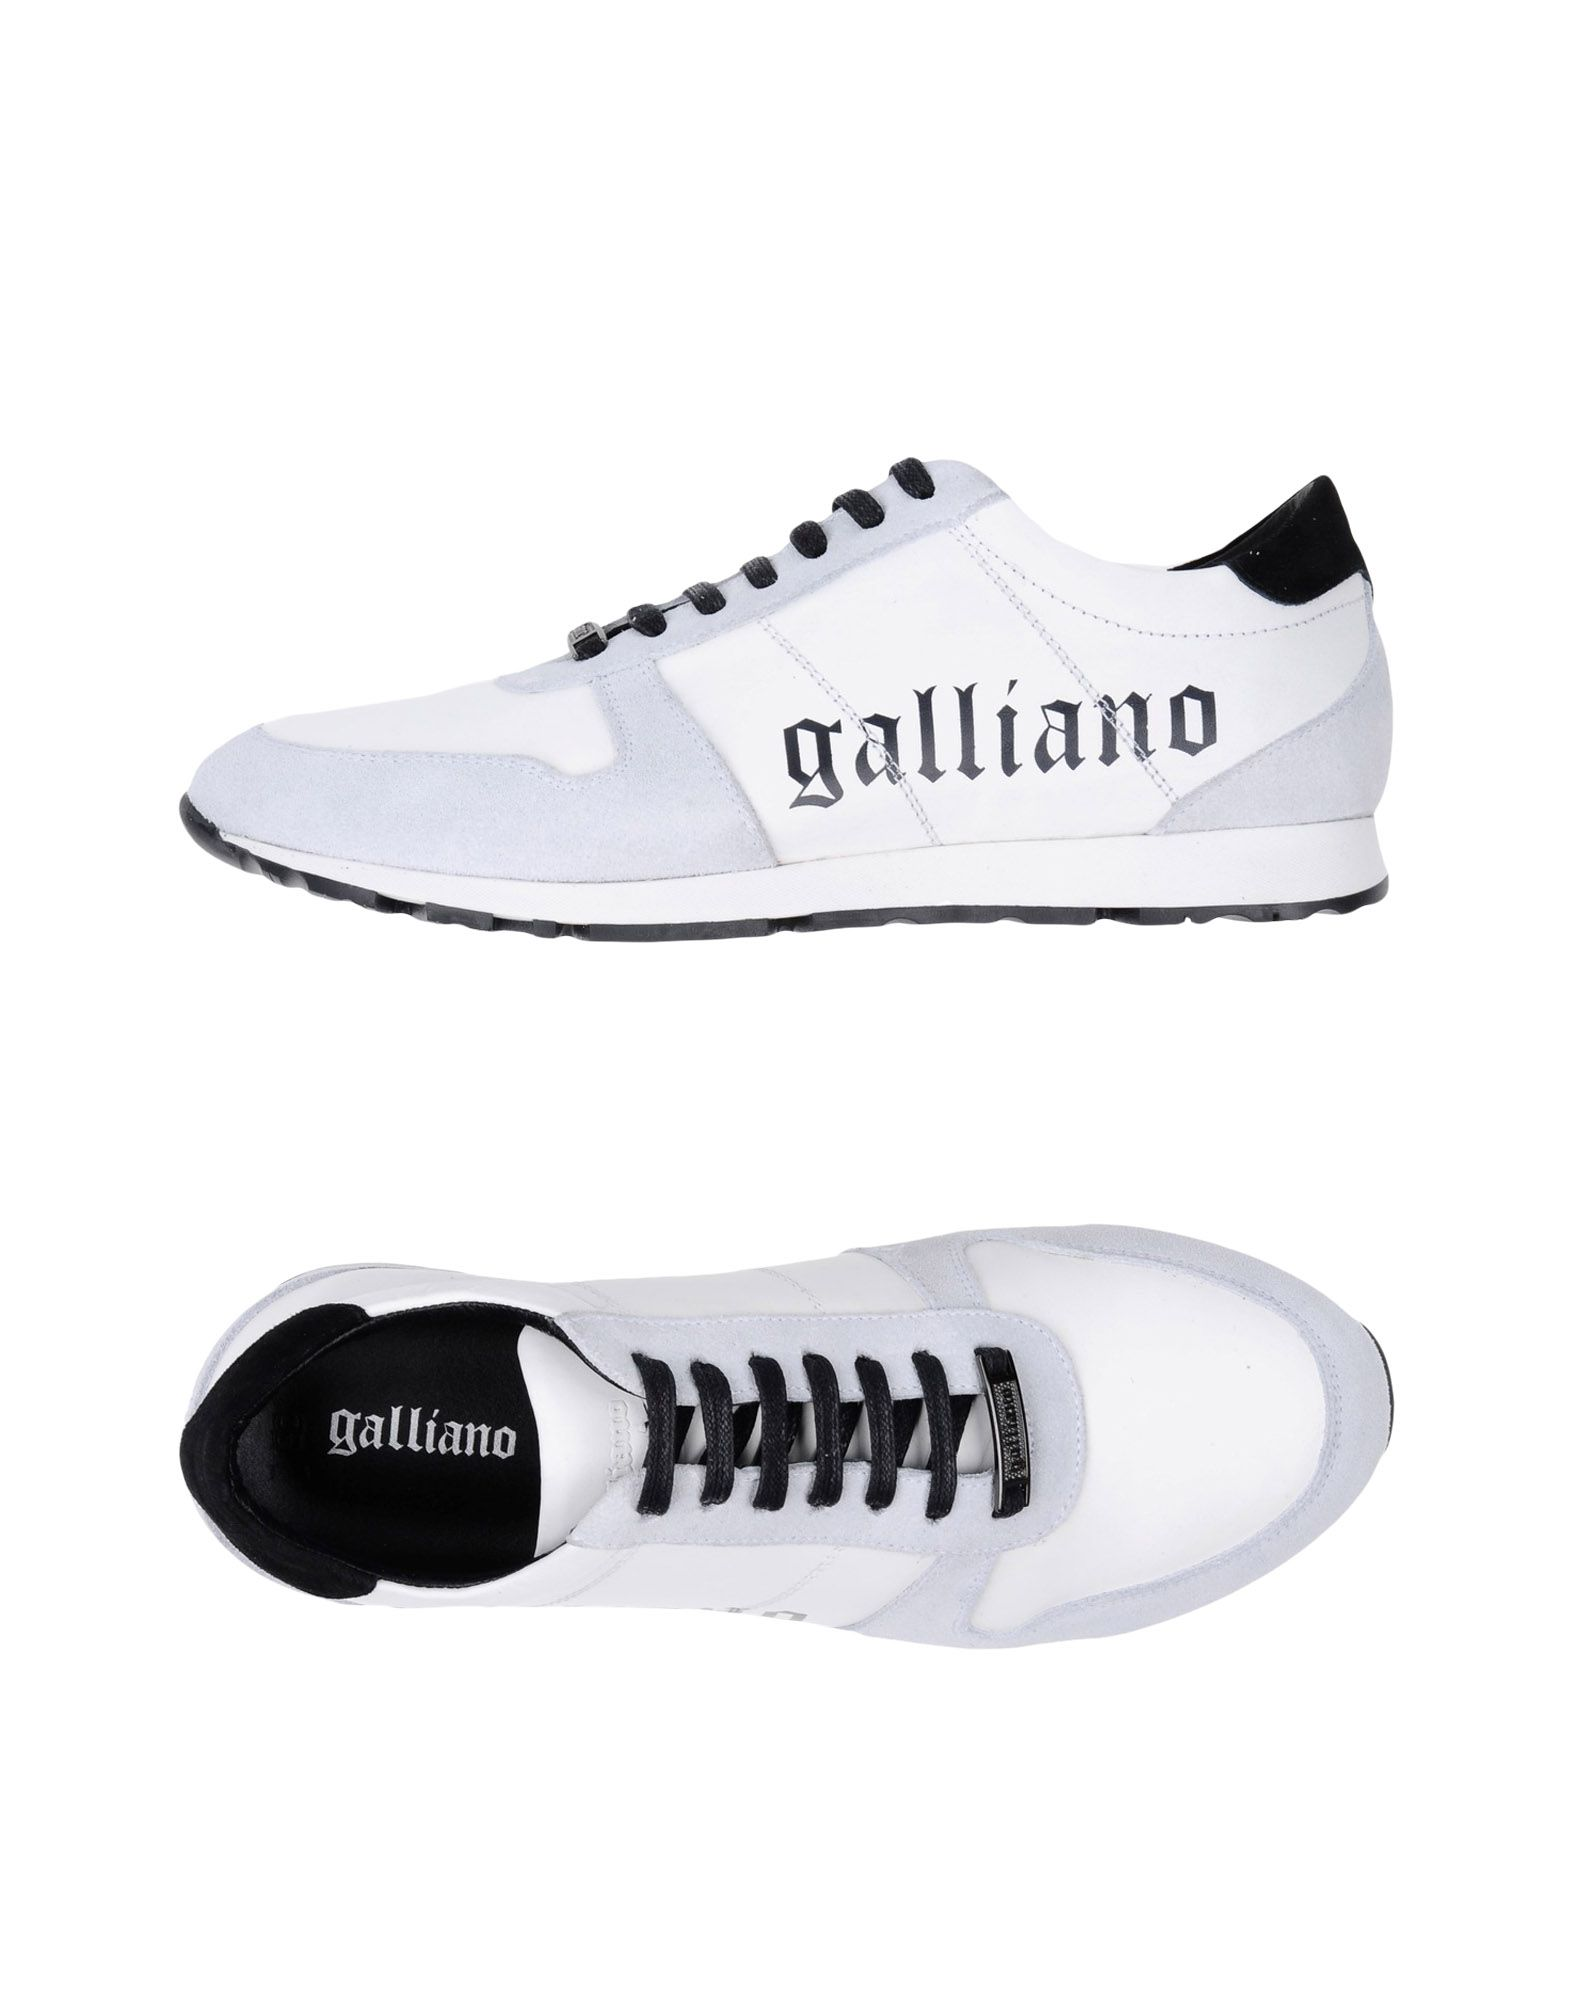 Sneakers Galliano Homme - Sneakers Galliano  Blanc Meilleur modèle de vente